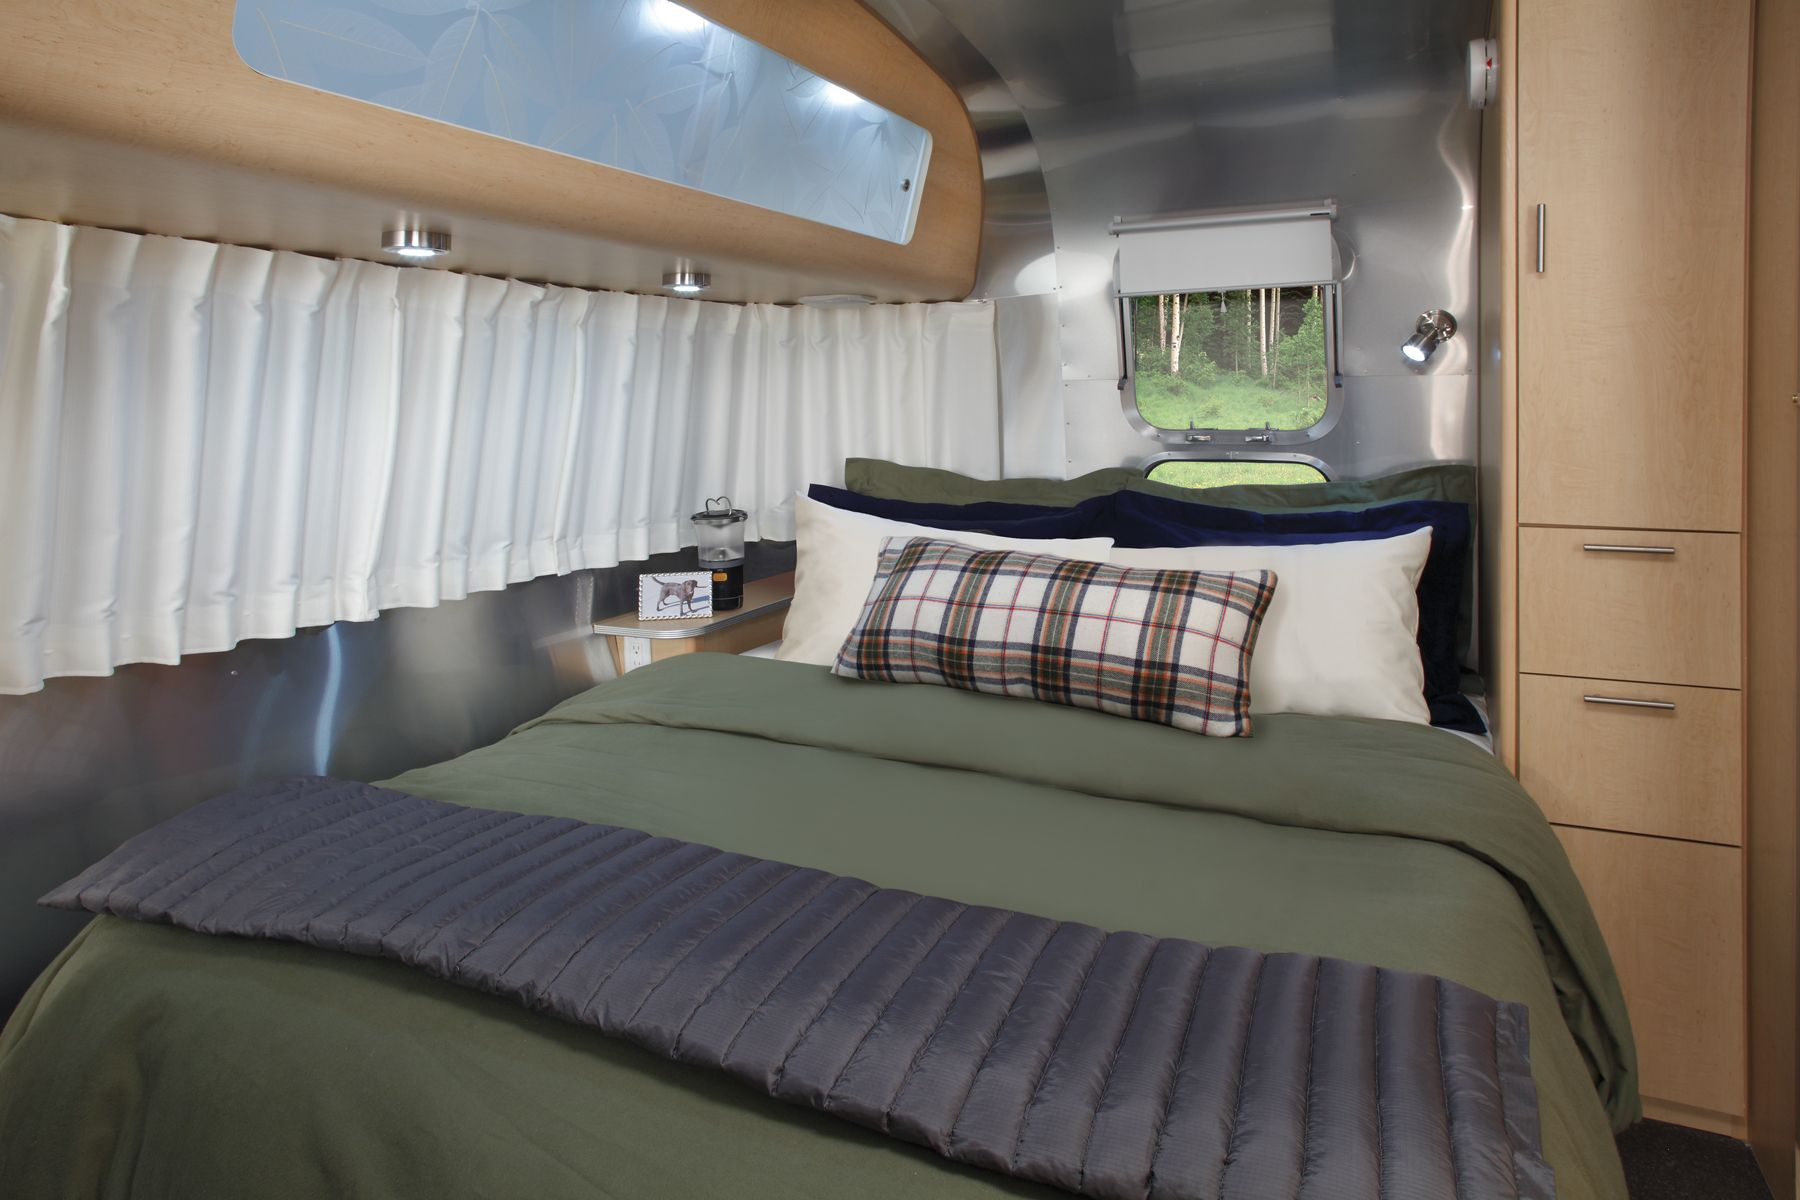 Eddie Bauer Airstream - bedding | Airstream Interiors | Pinterest ...